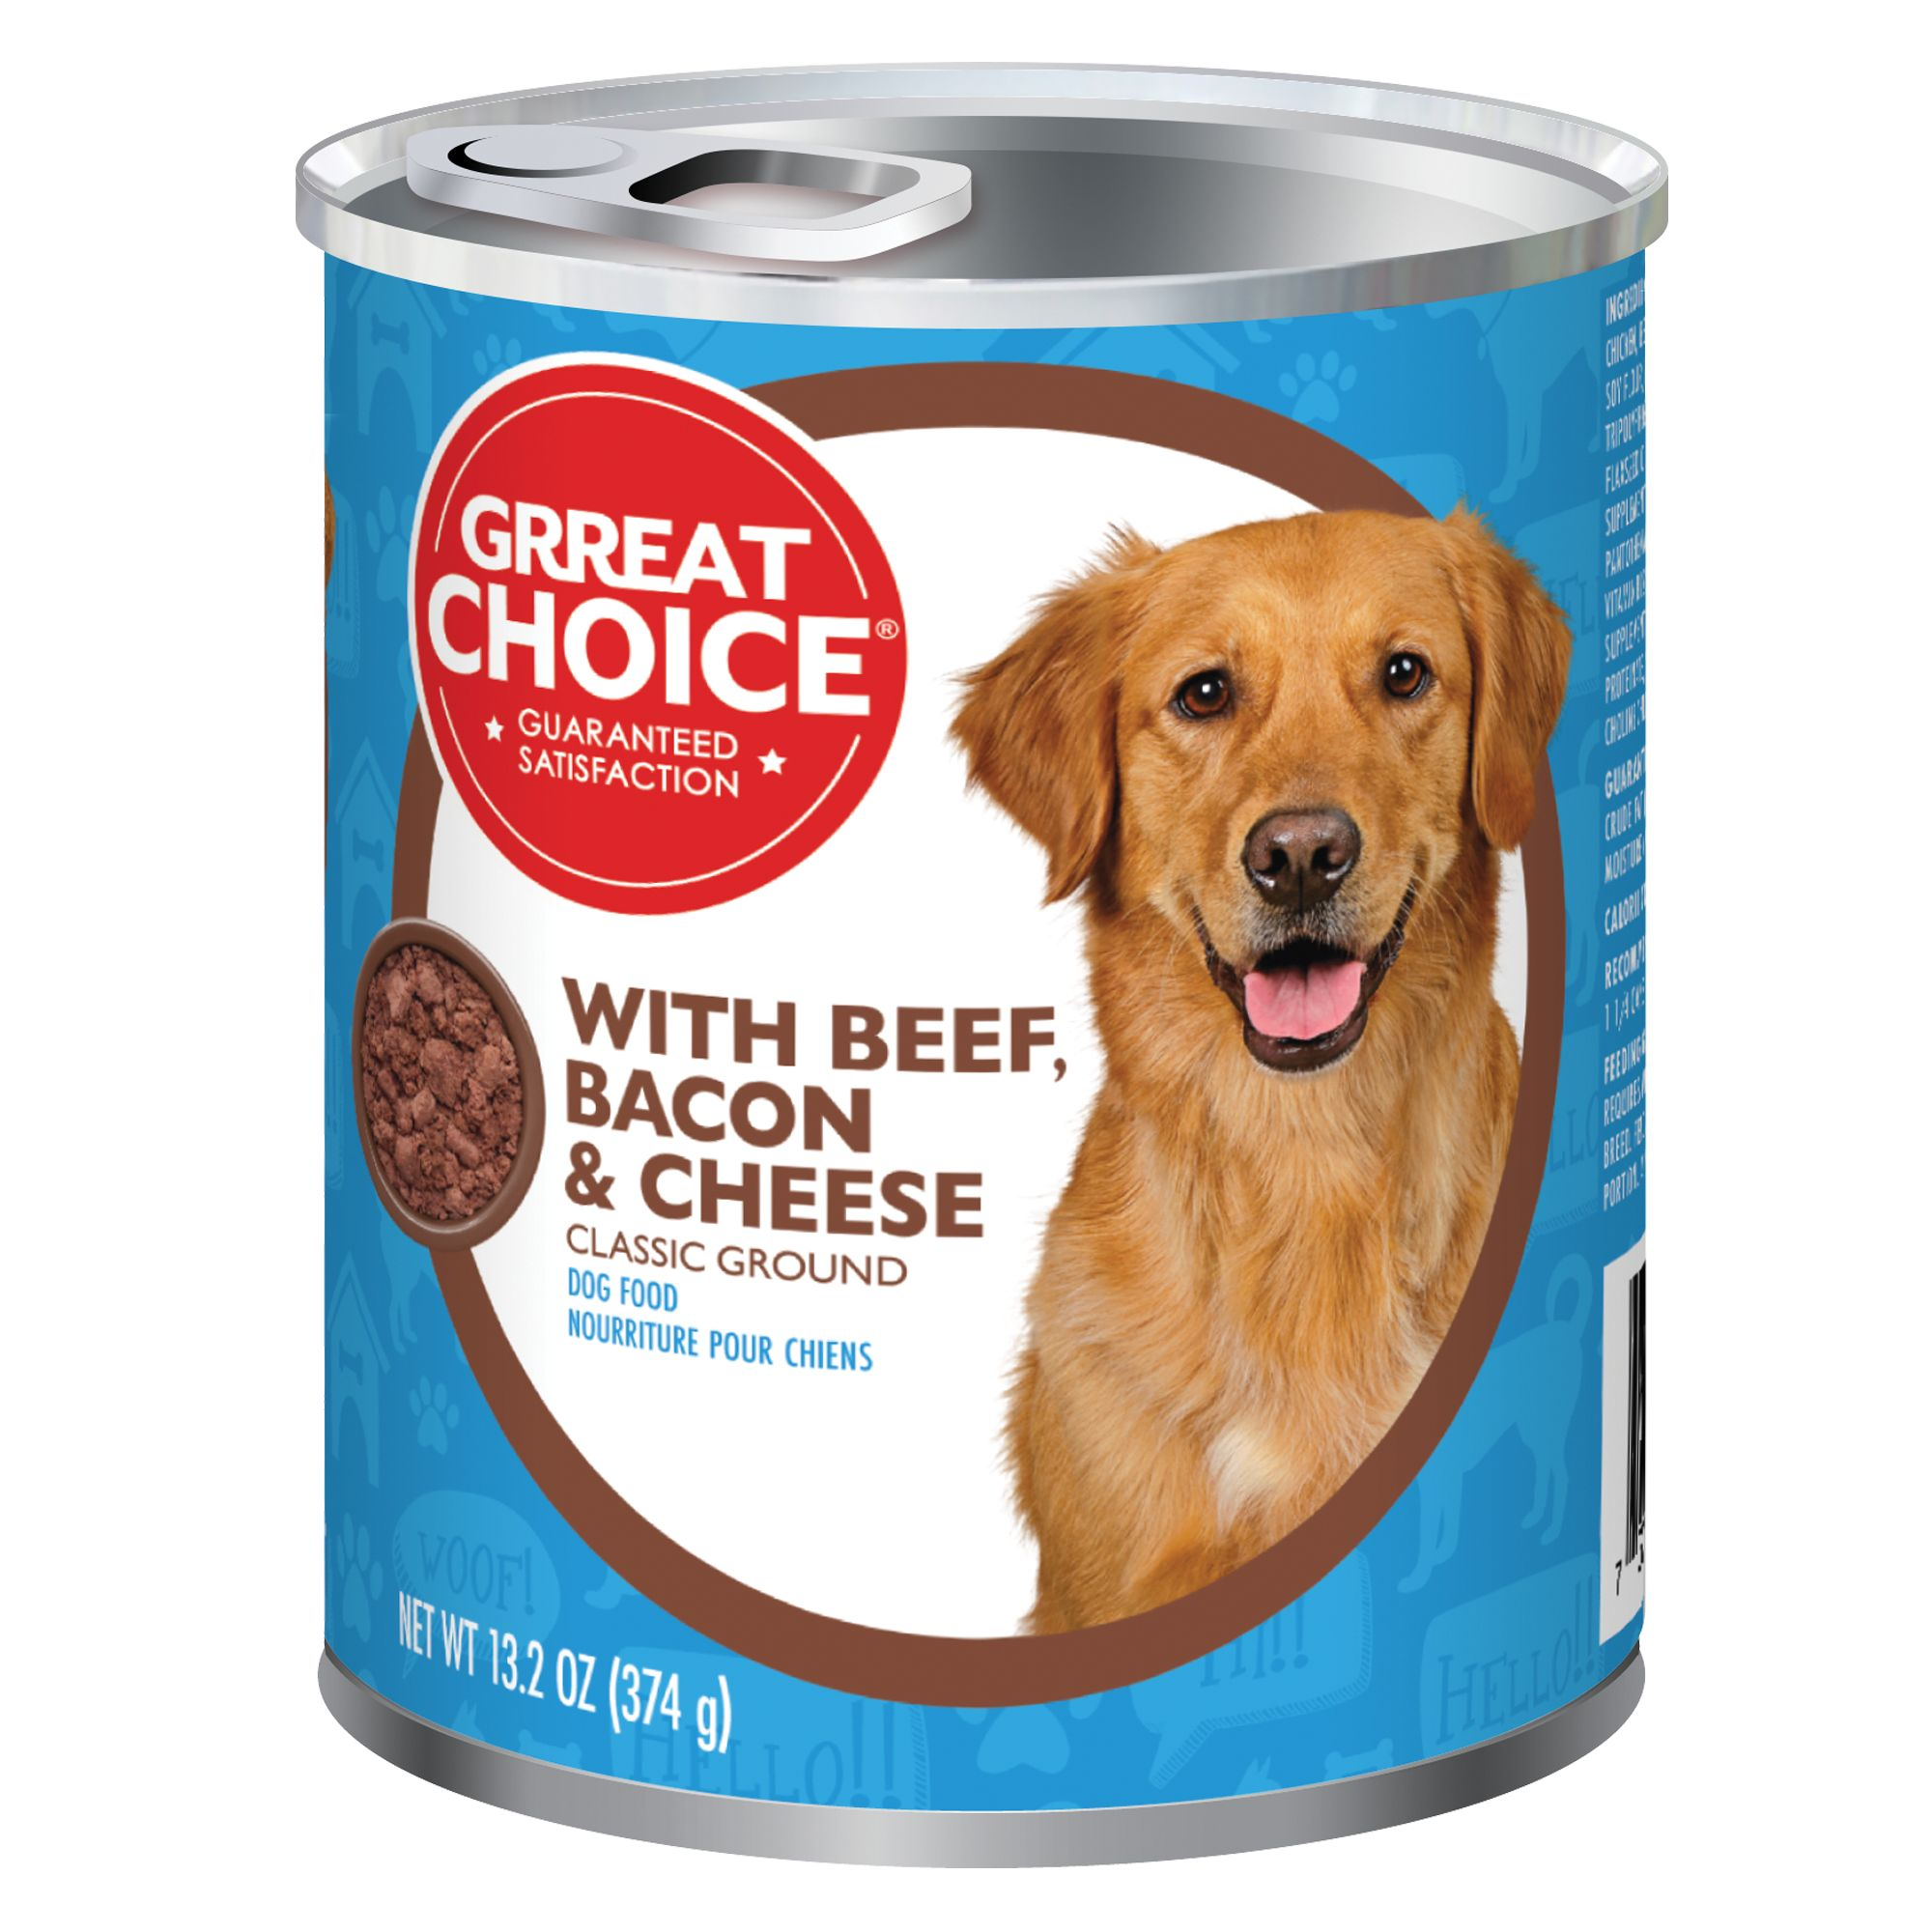 Great Choice Classic Ground Dinner Adult Dog Food Size 13 2 Oz